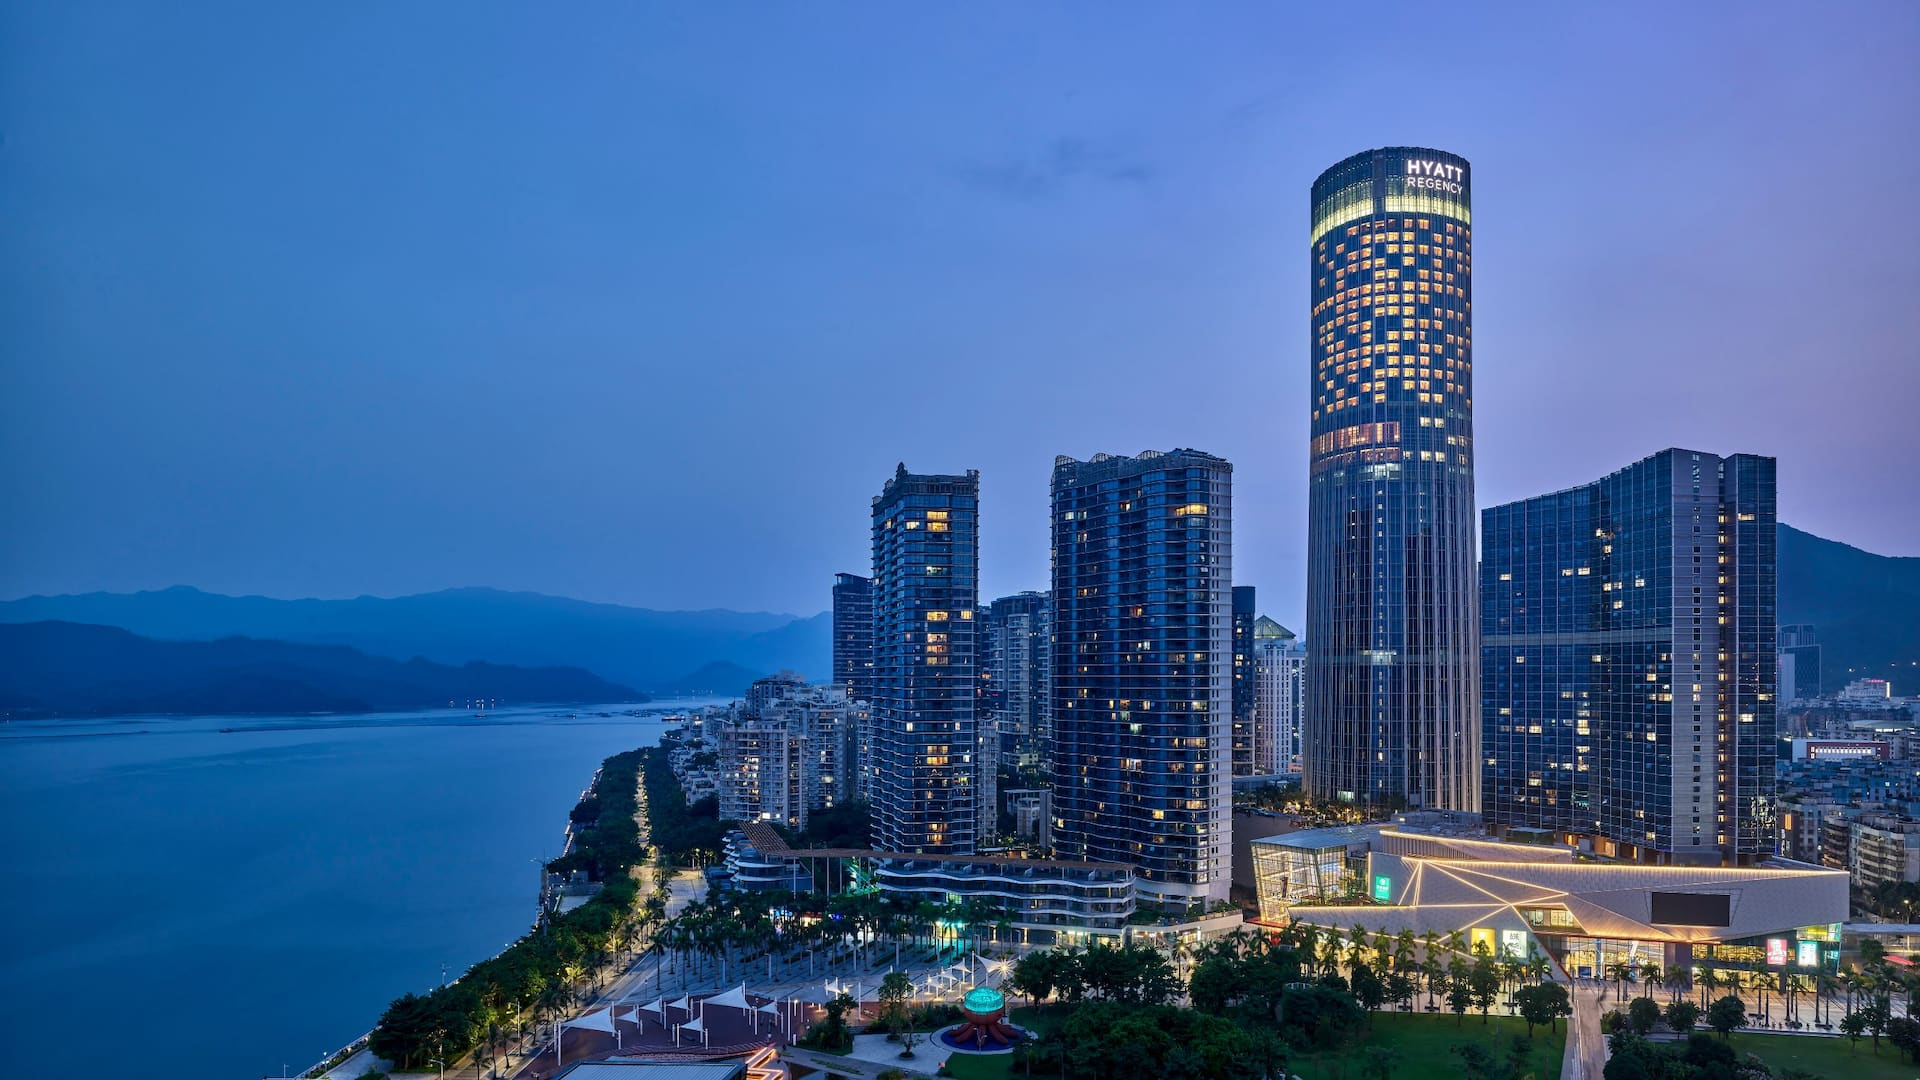 Welcome to Hyatt Regency Shenzhen Yantian